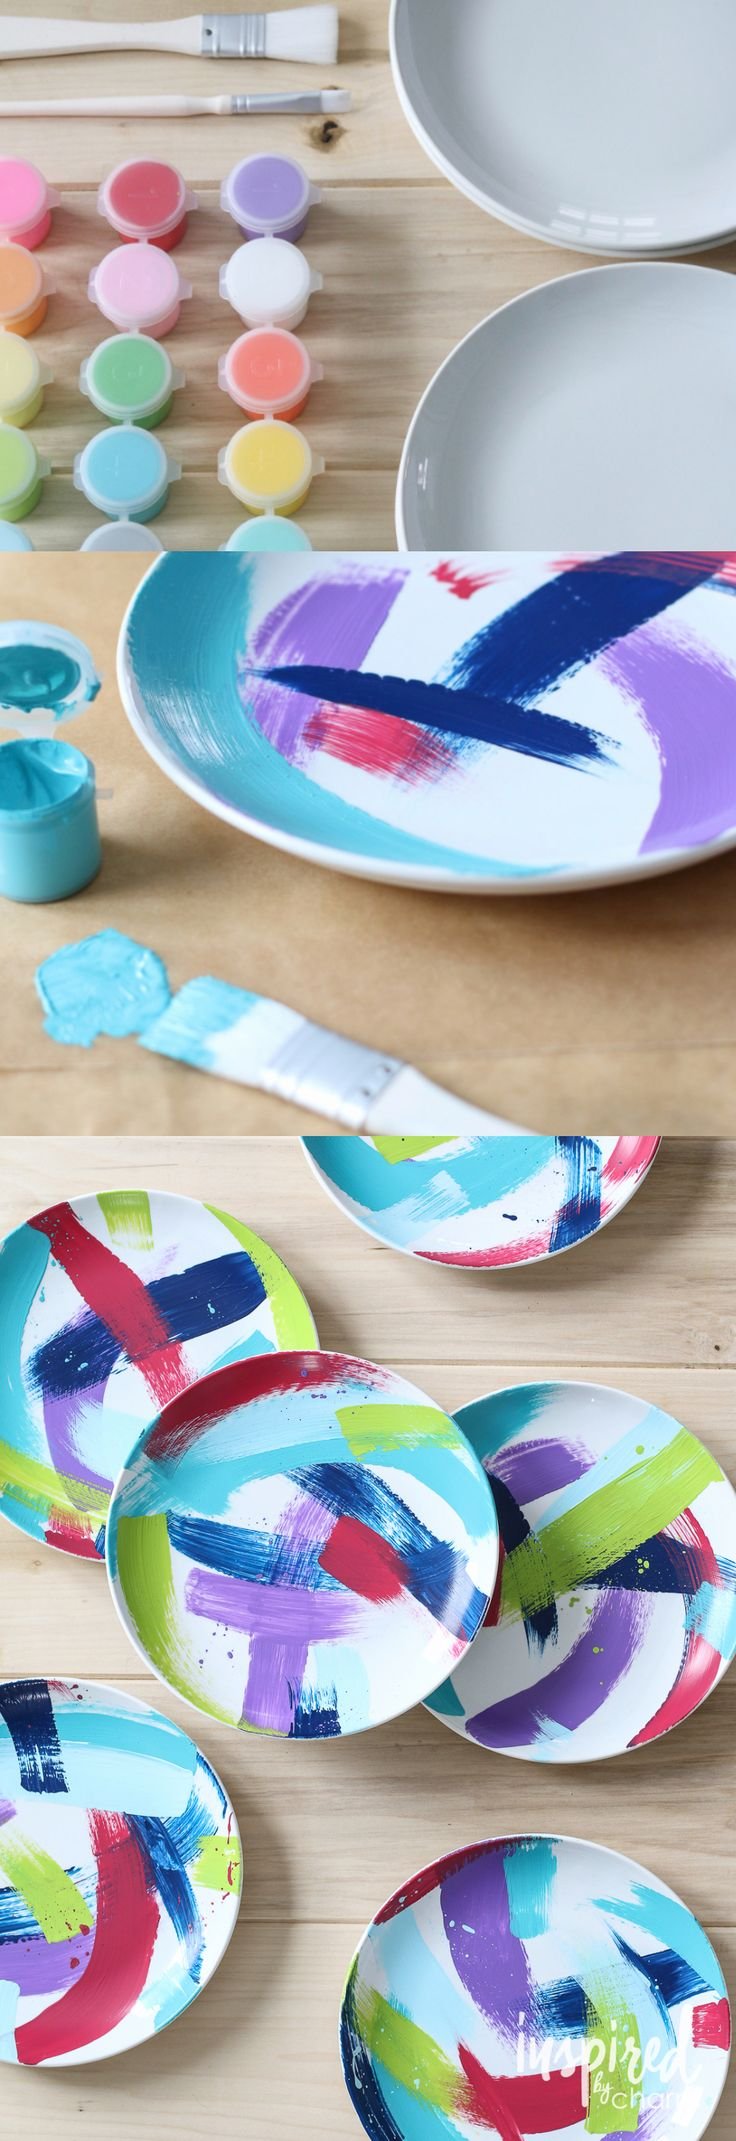 DIY Painted Plates - Save money and get creative by making your own artistic-inspired dinner plates with paint! Low-budget and easy craft. Swap the paint colors and pattern to match your style and decor.